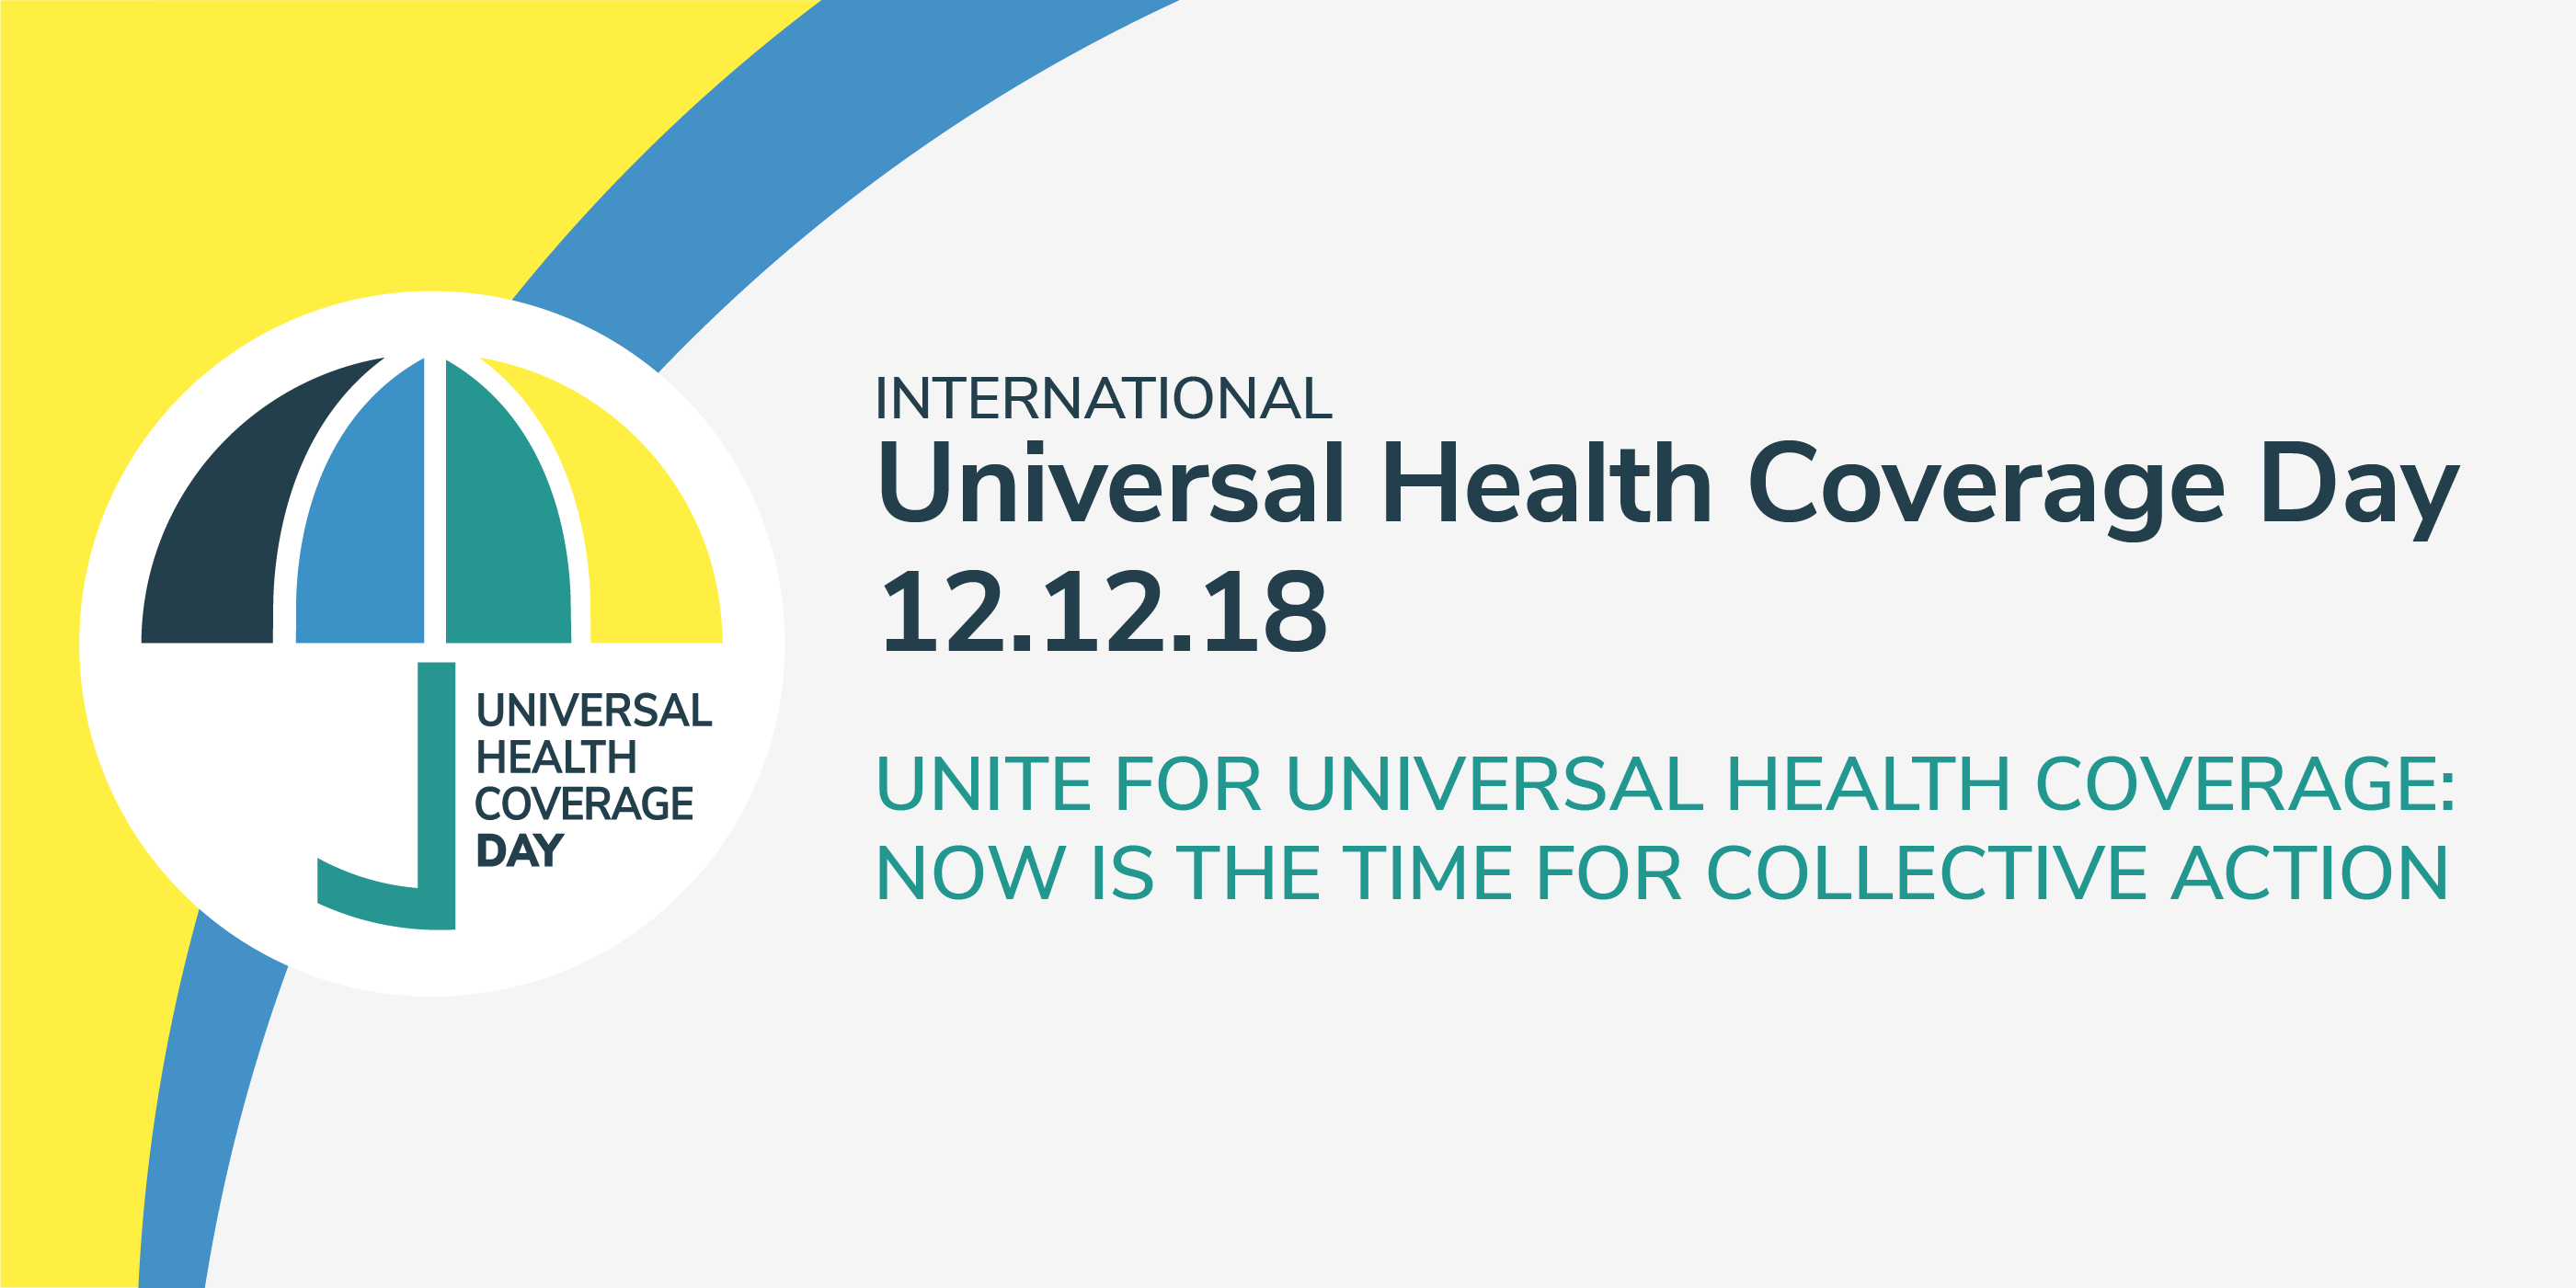 international universal health coverage day